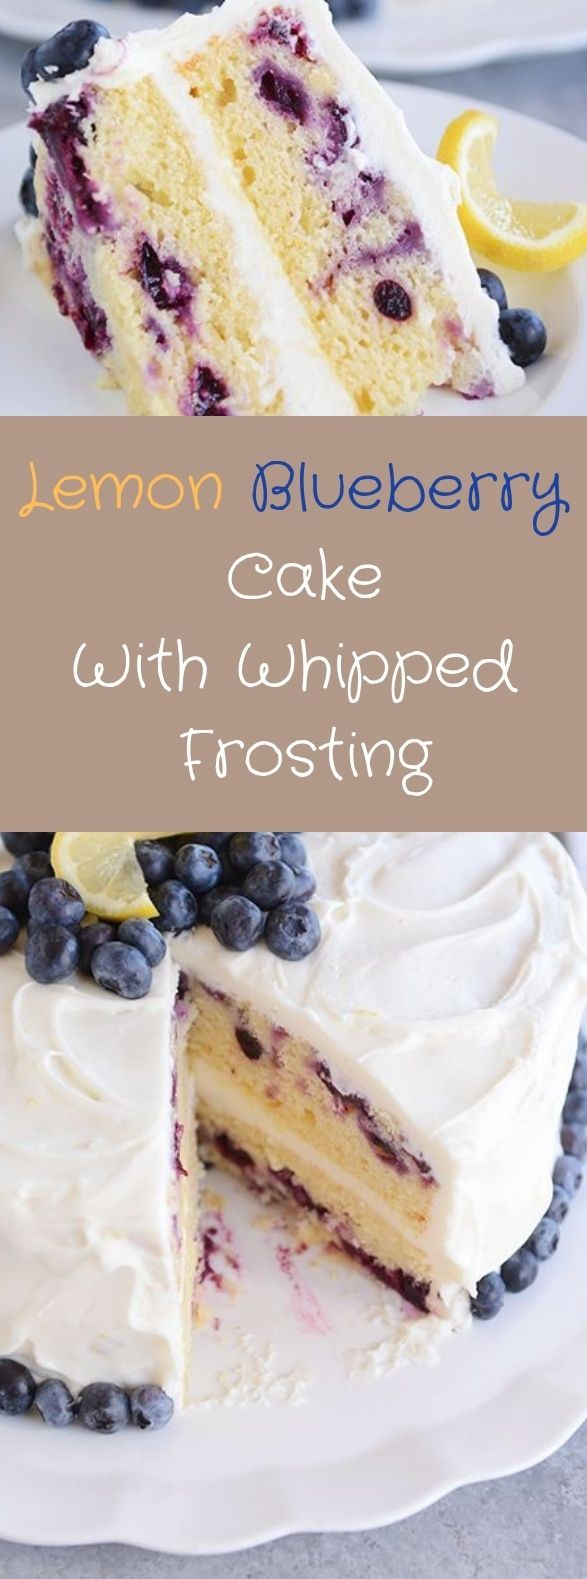 LEMON BLUEBERRY CAKE WITH WHIPPED LEMON CREAM FROSTING #lemon #cake #cookiesandcreamfrosting